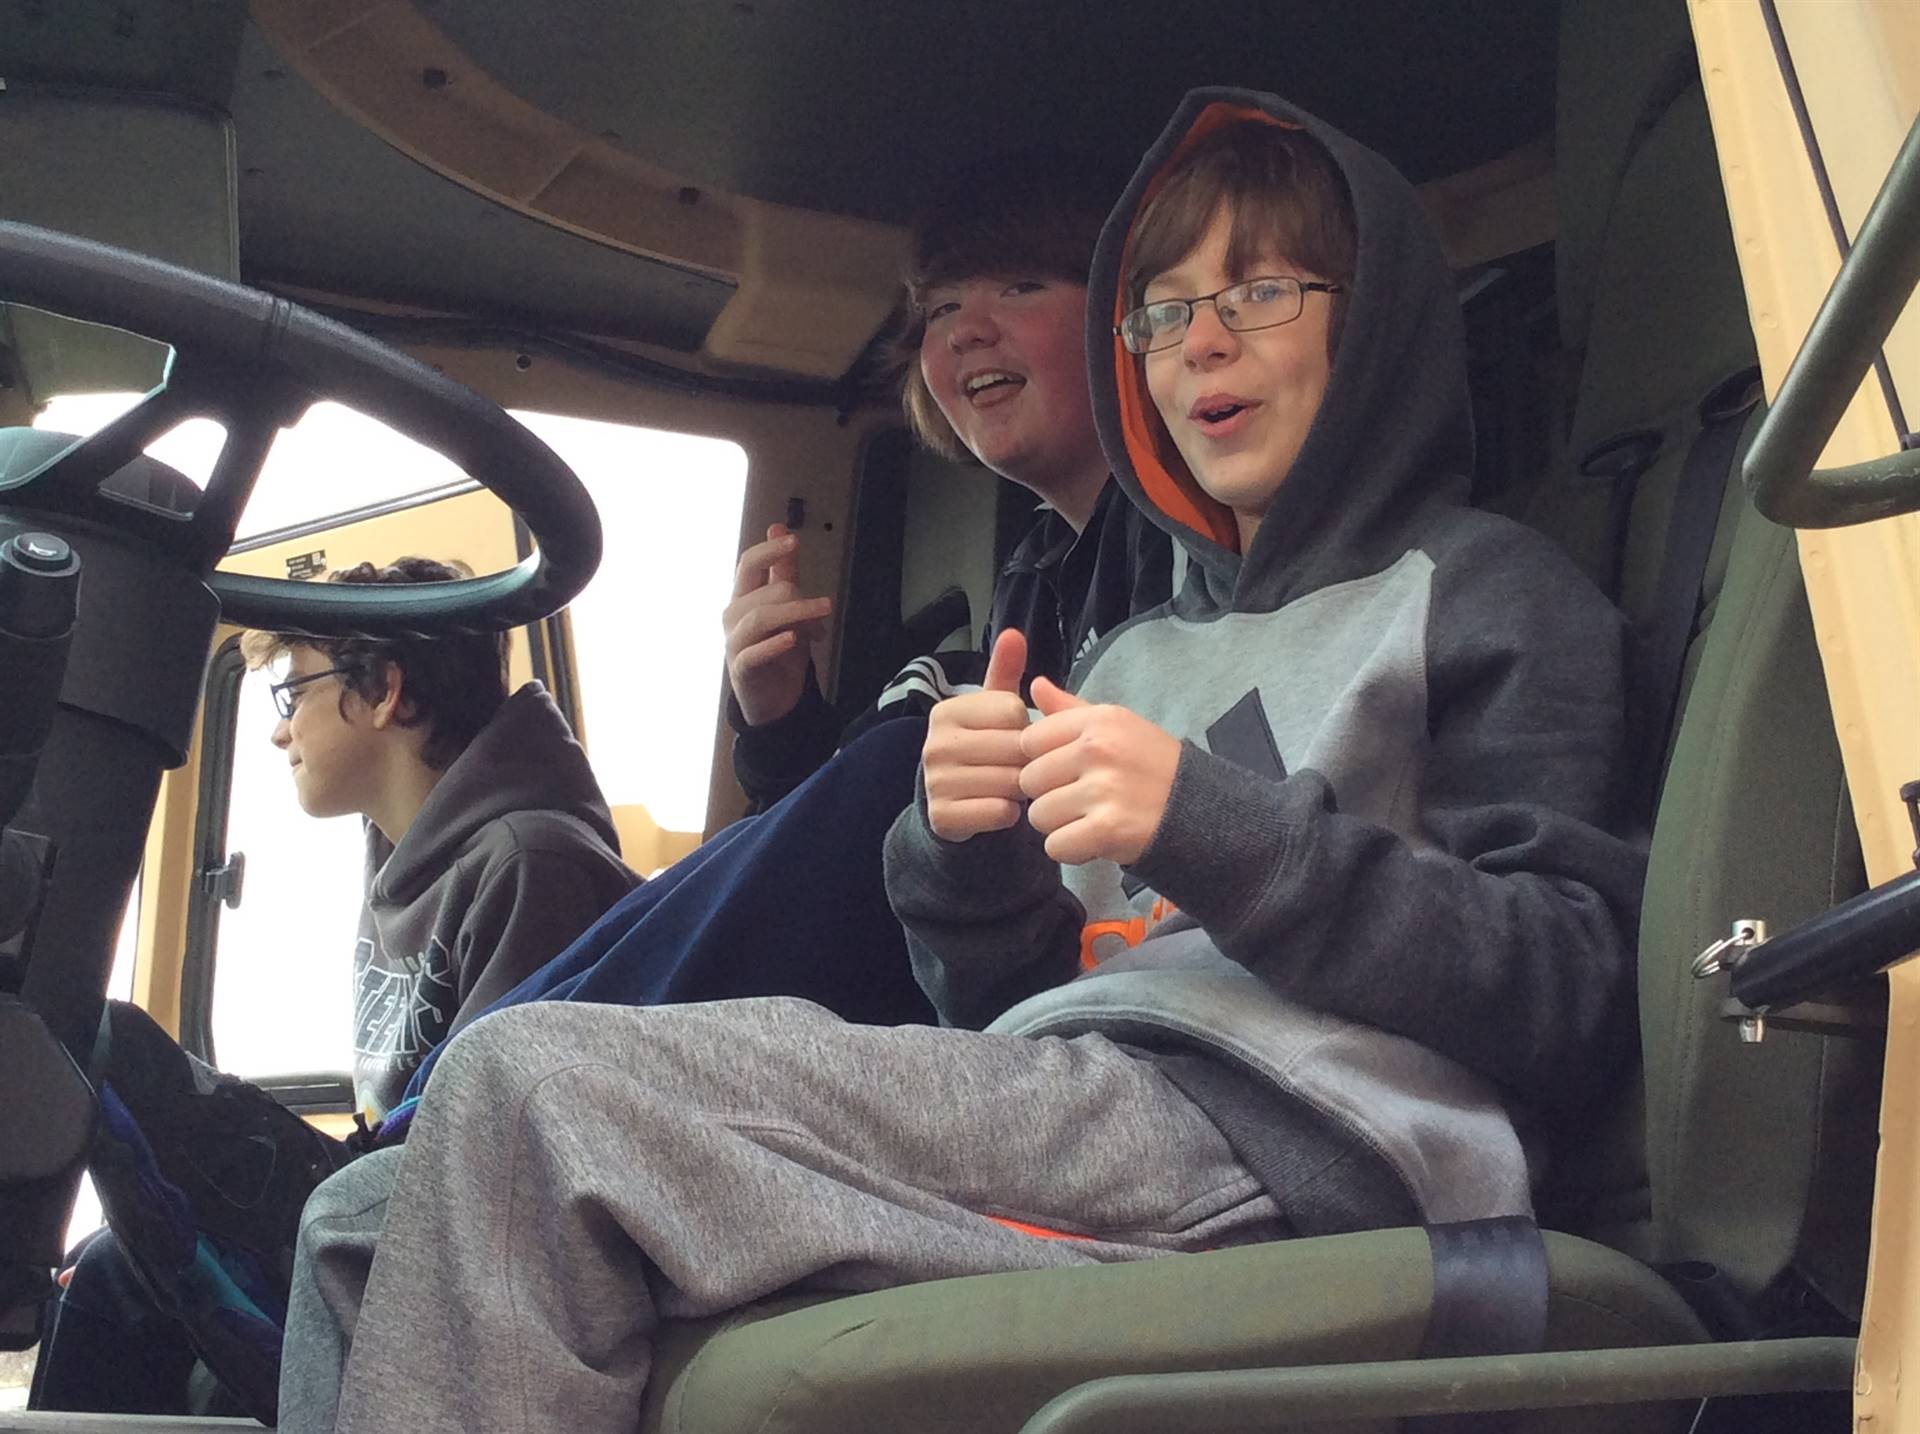 Students had a chance to sit in a military vehicle